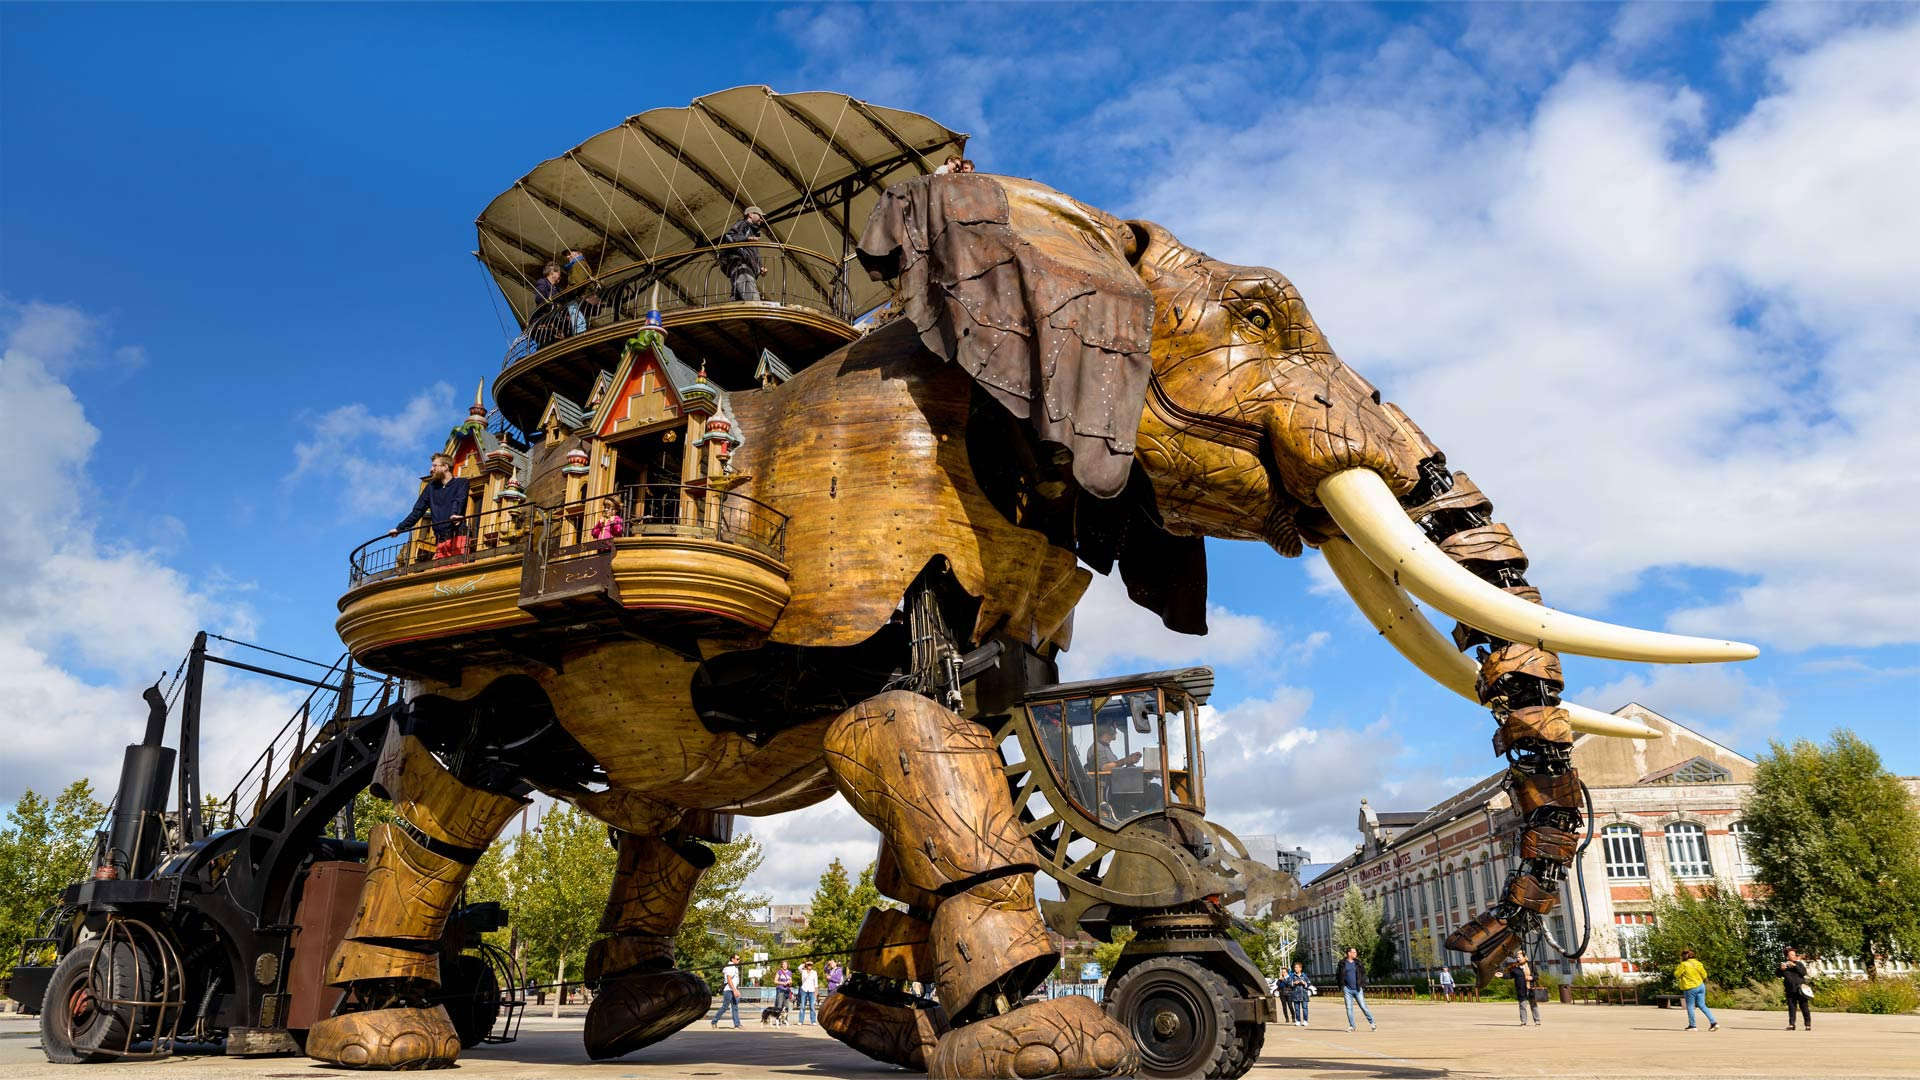 The Grand Éléphant at Machines of the Isle of Nantes, France (© Dutourdumonde Photography/Shutterstock)(Bing United States)